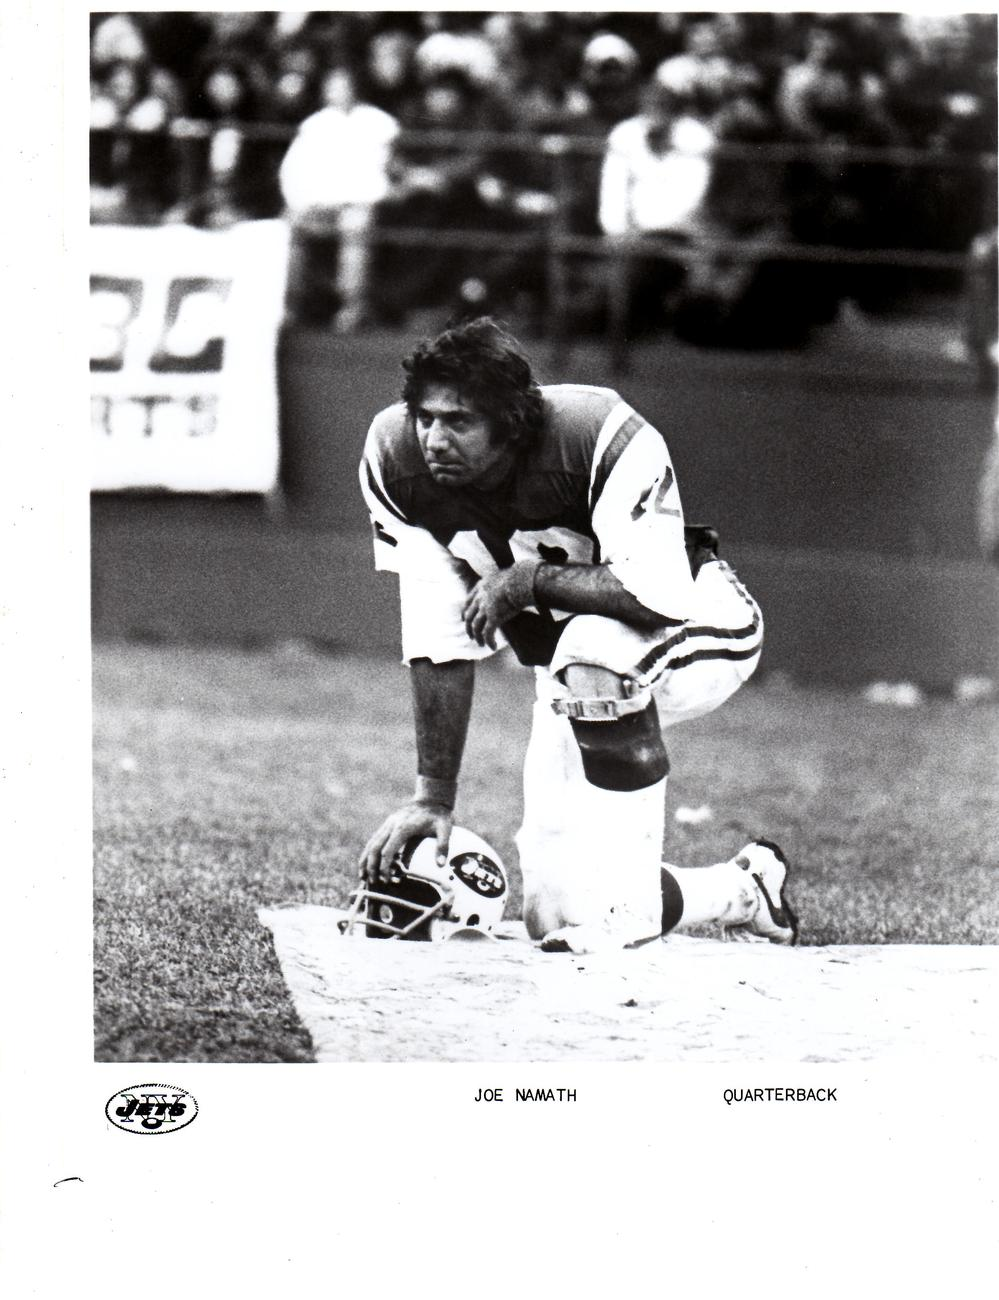 Primary image for N.Y. JETS  #12 Joe Namath -Quarterback